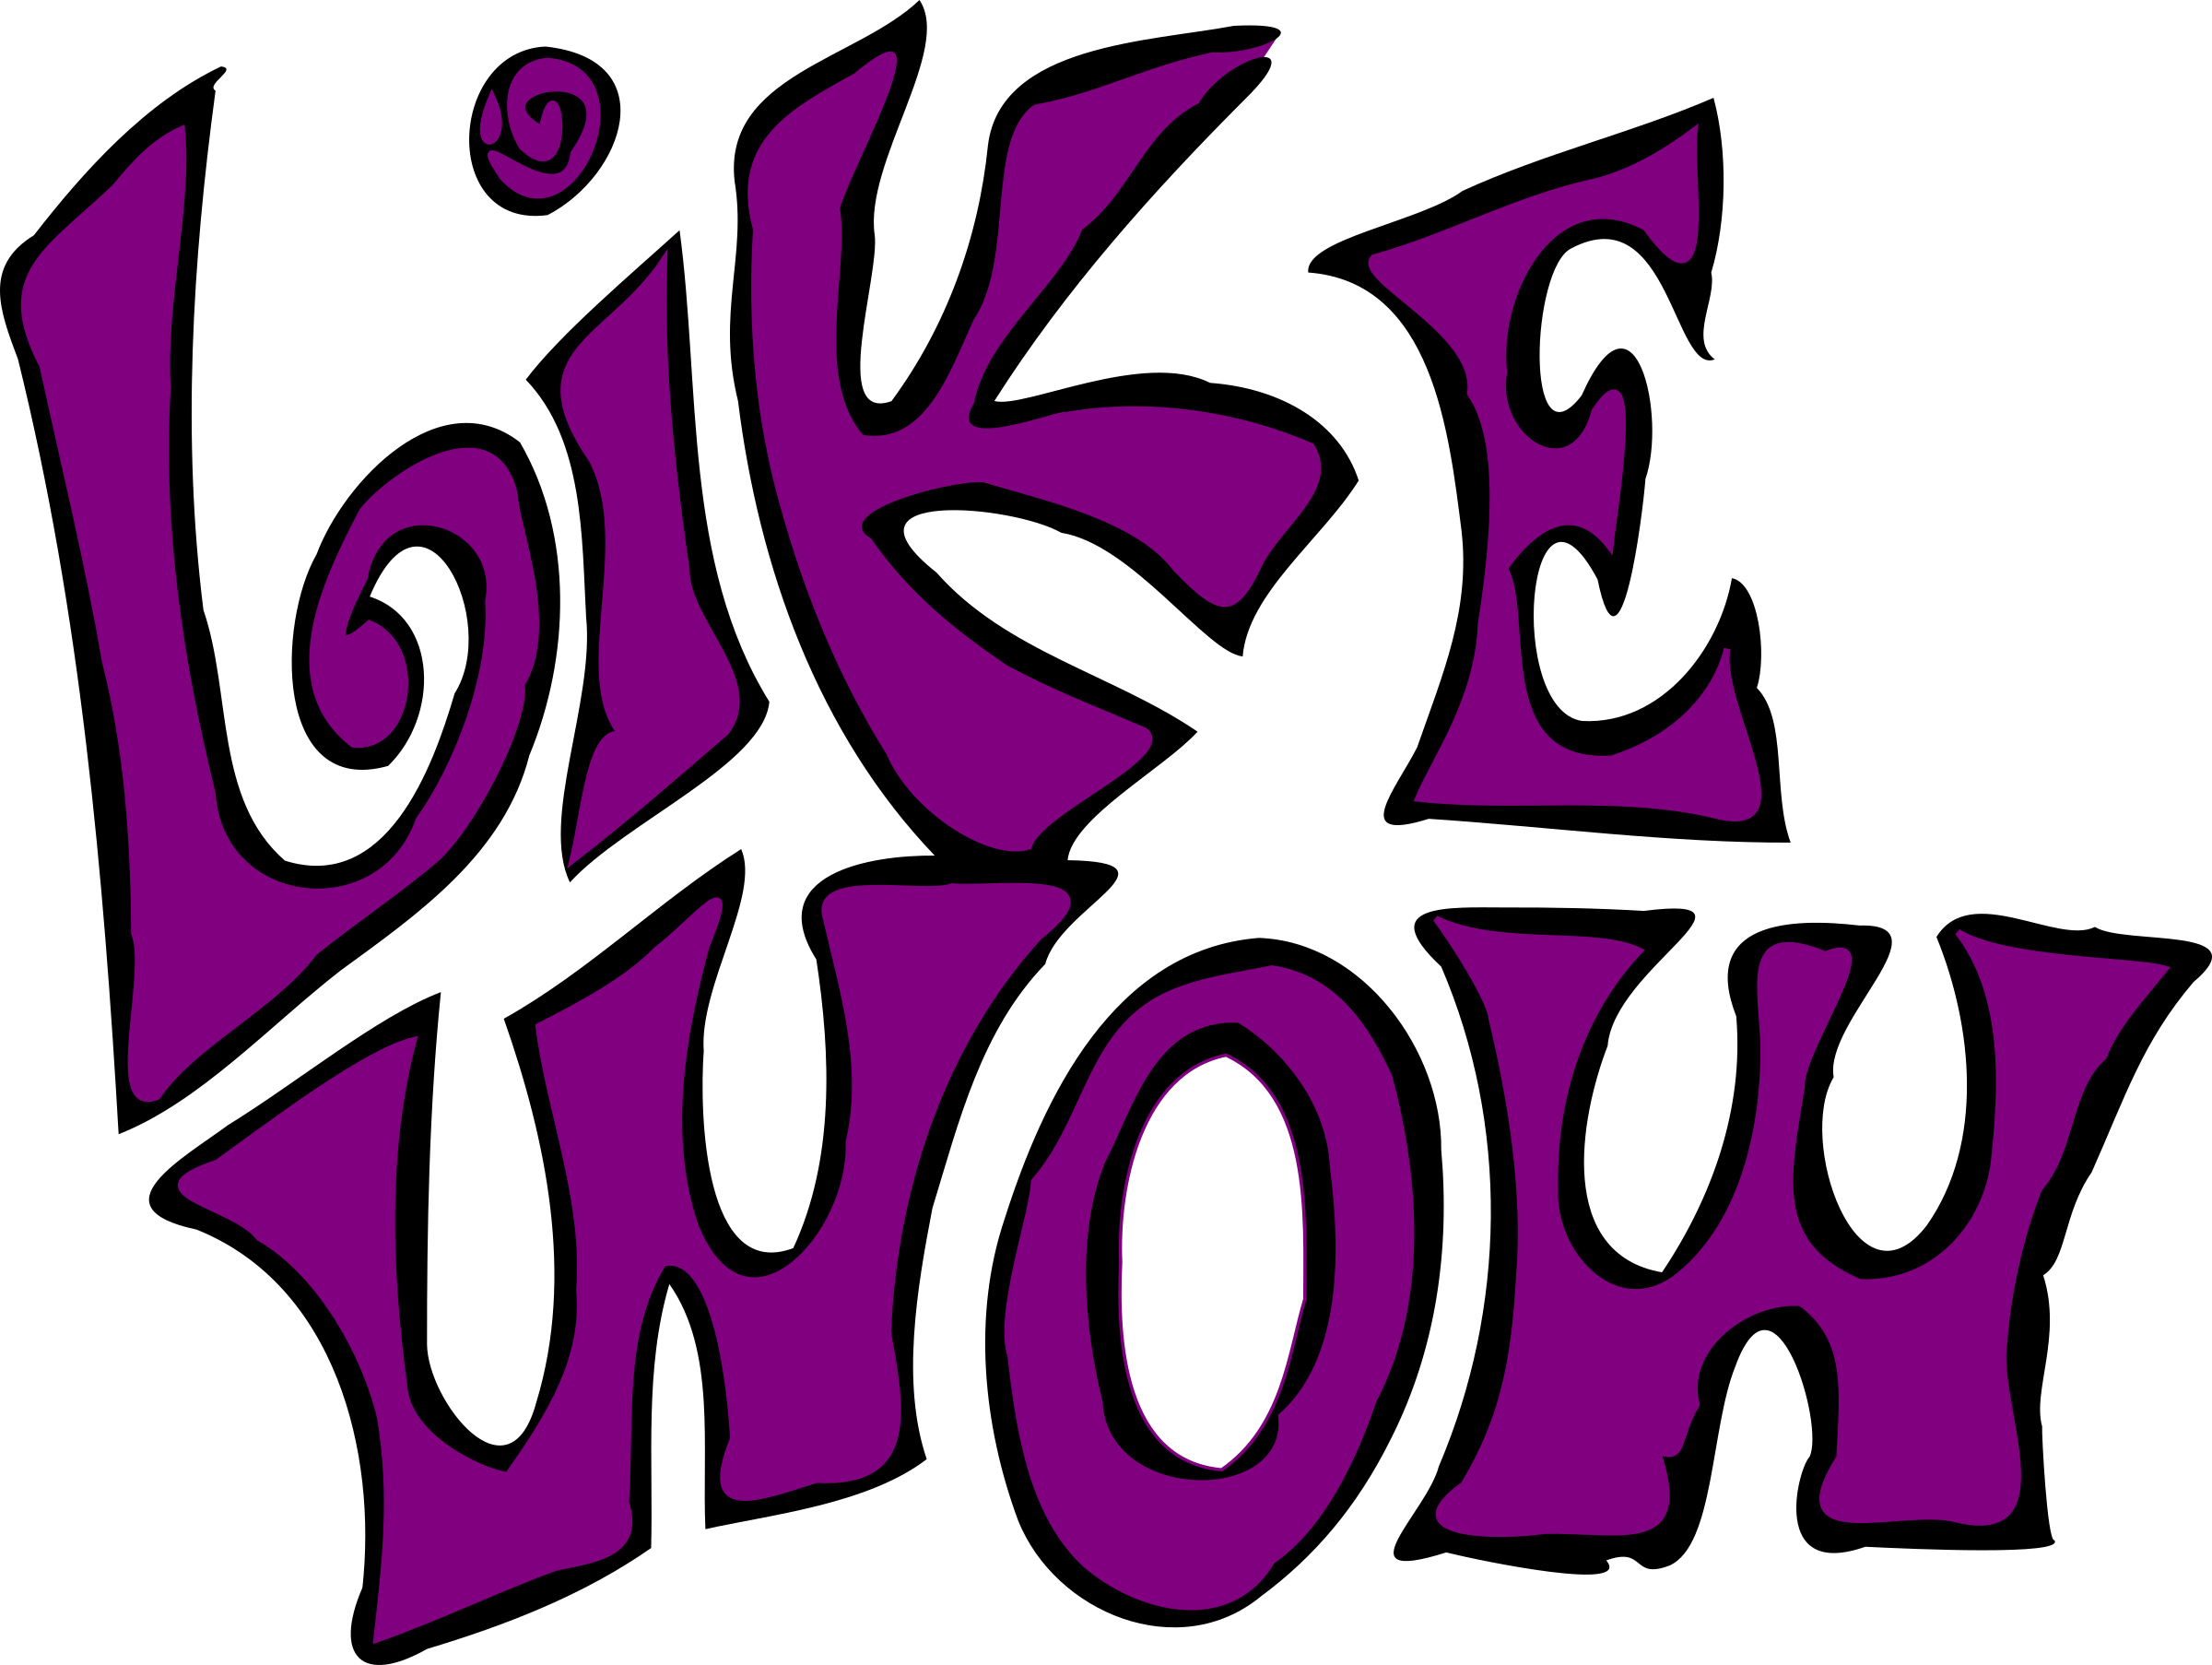 Like big image png. Wow clipart